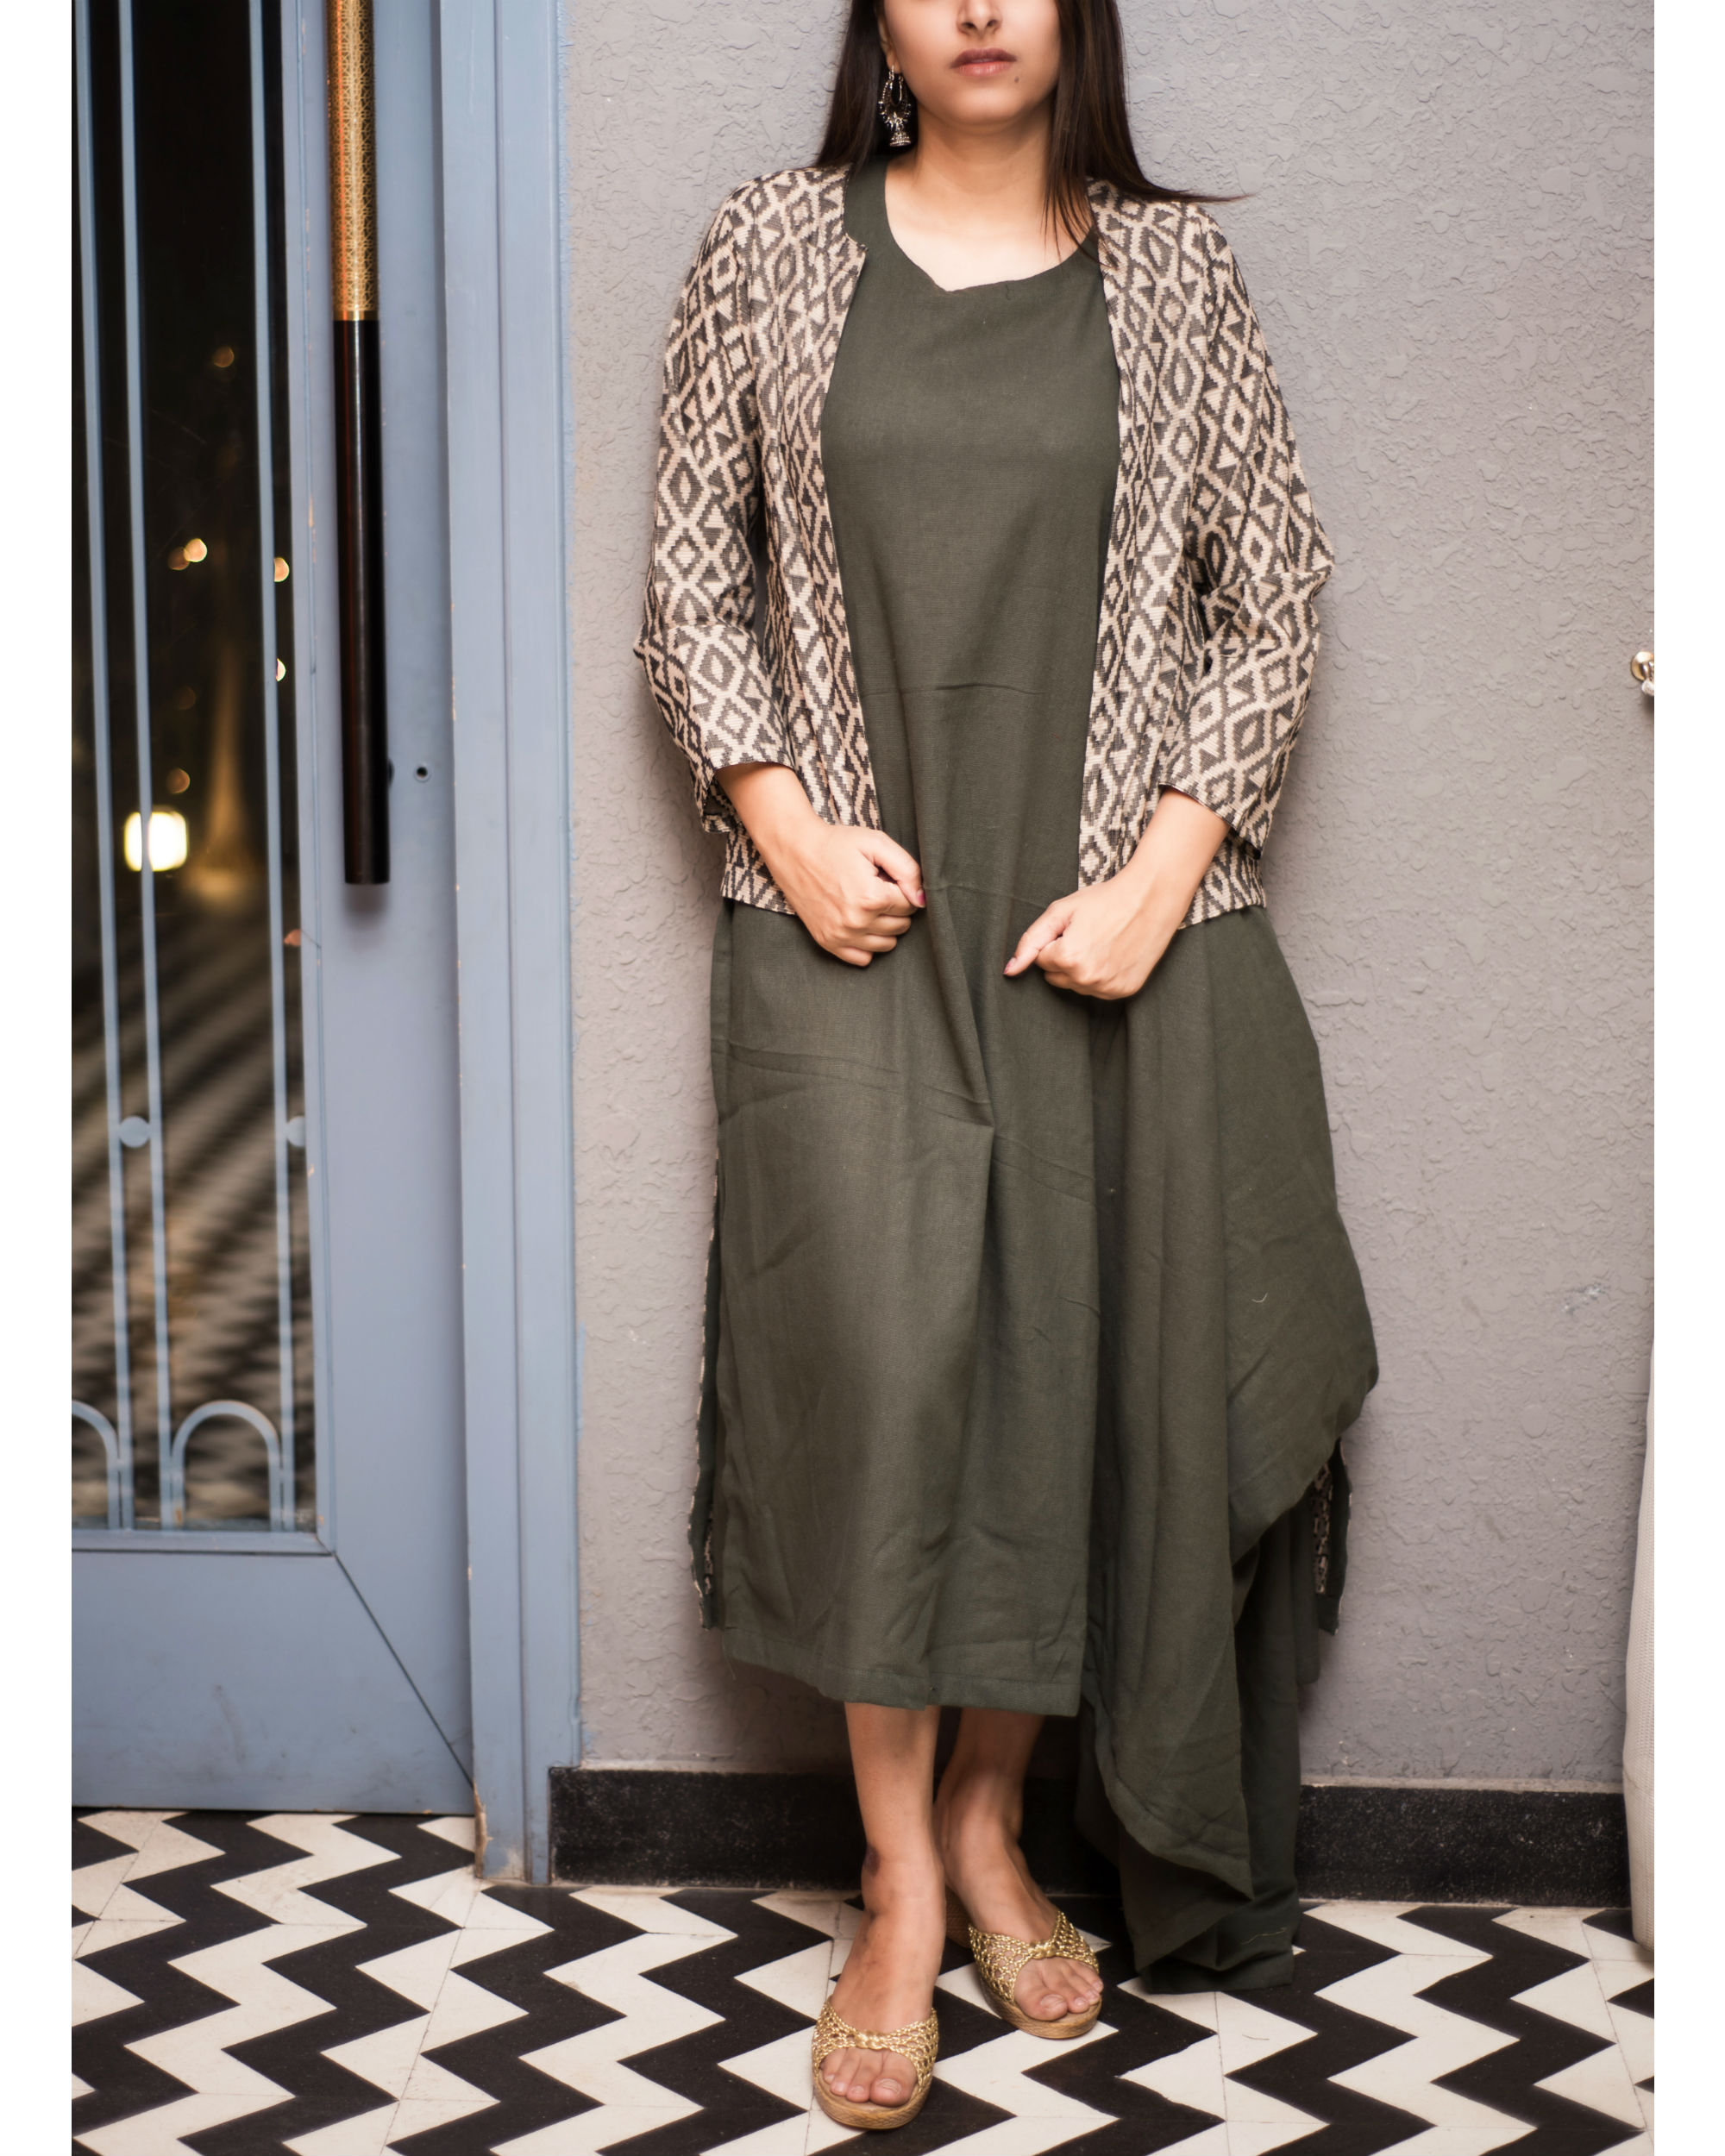 84a20ee20ee48 Green cowl dress with ikat trail jacket by Label Harsha Khatry